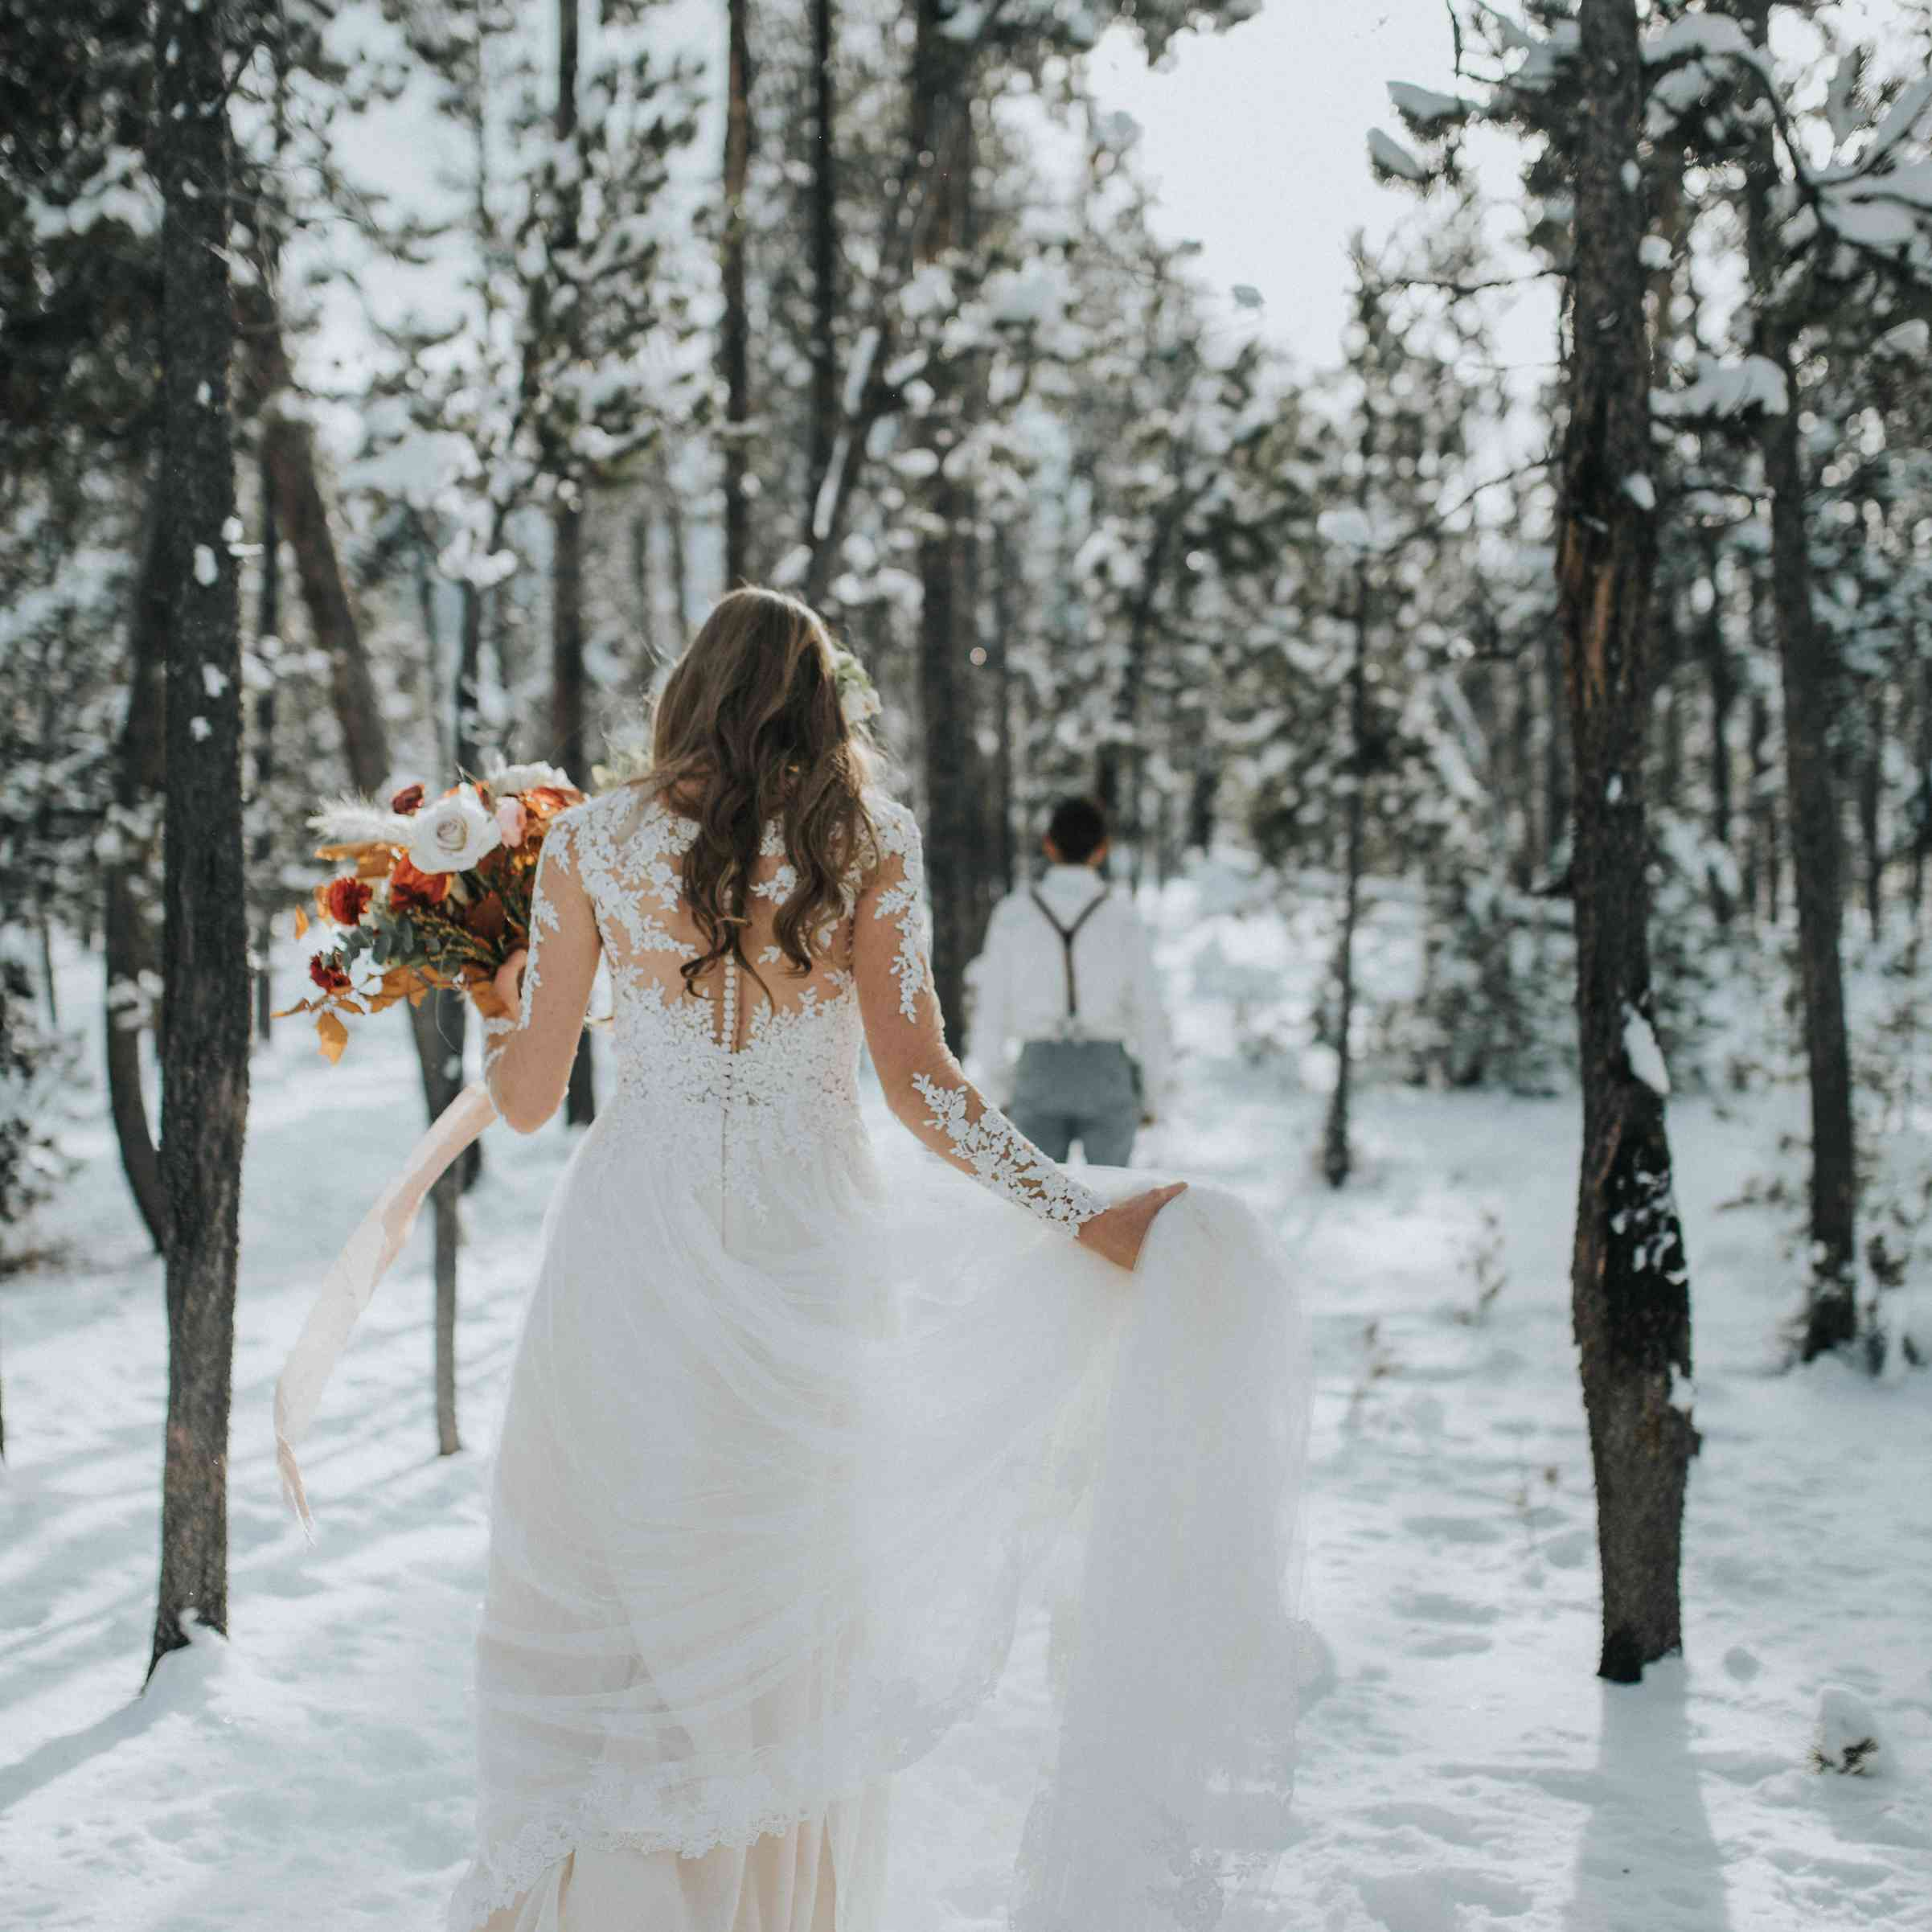 Bride walking through the woods in the snow holding a bouquet